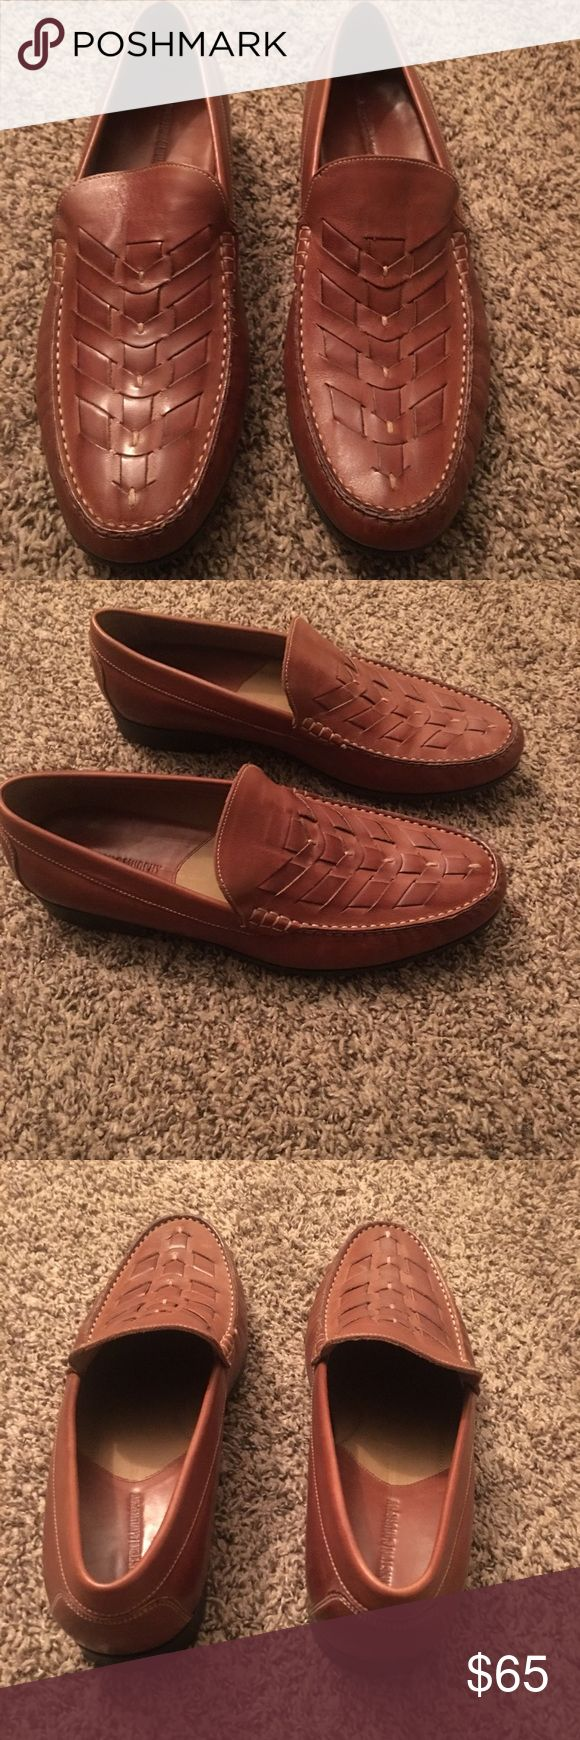 🎉🎉🎉 Johnston Murphy Braided Leather Loafers A beautiful braided leather loafer in excellent used  condition Sz 10.5 please ask all questions before buying no refunds Johnston & Murphy Shoes Loafers & Slip-Ons